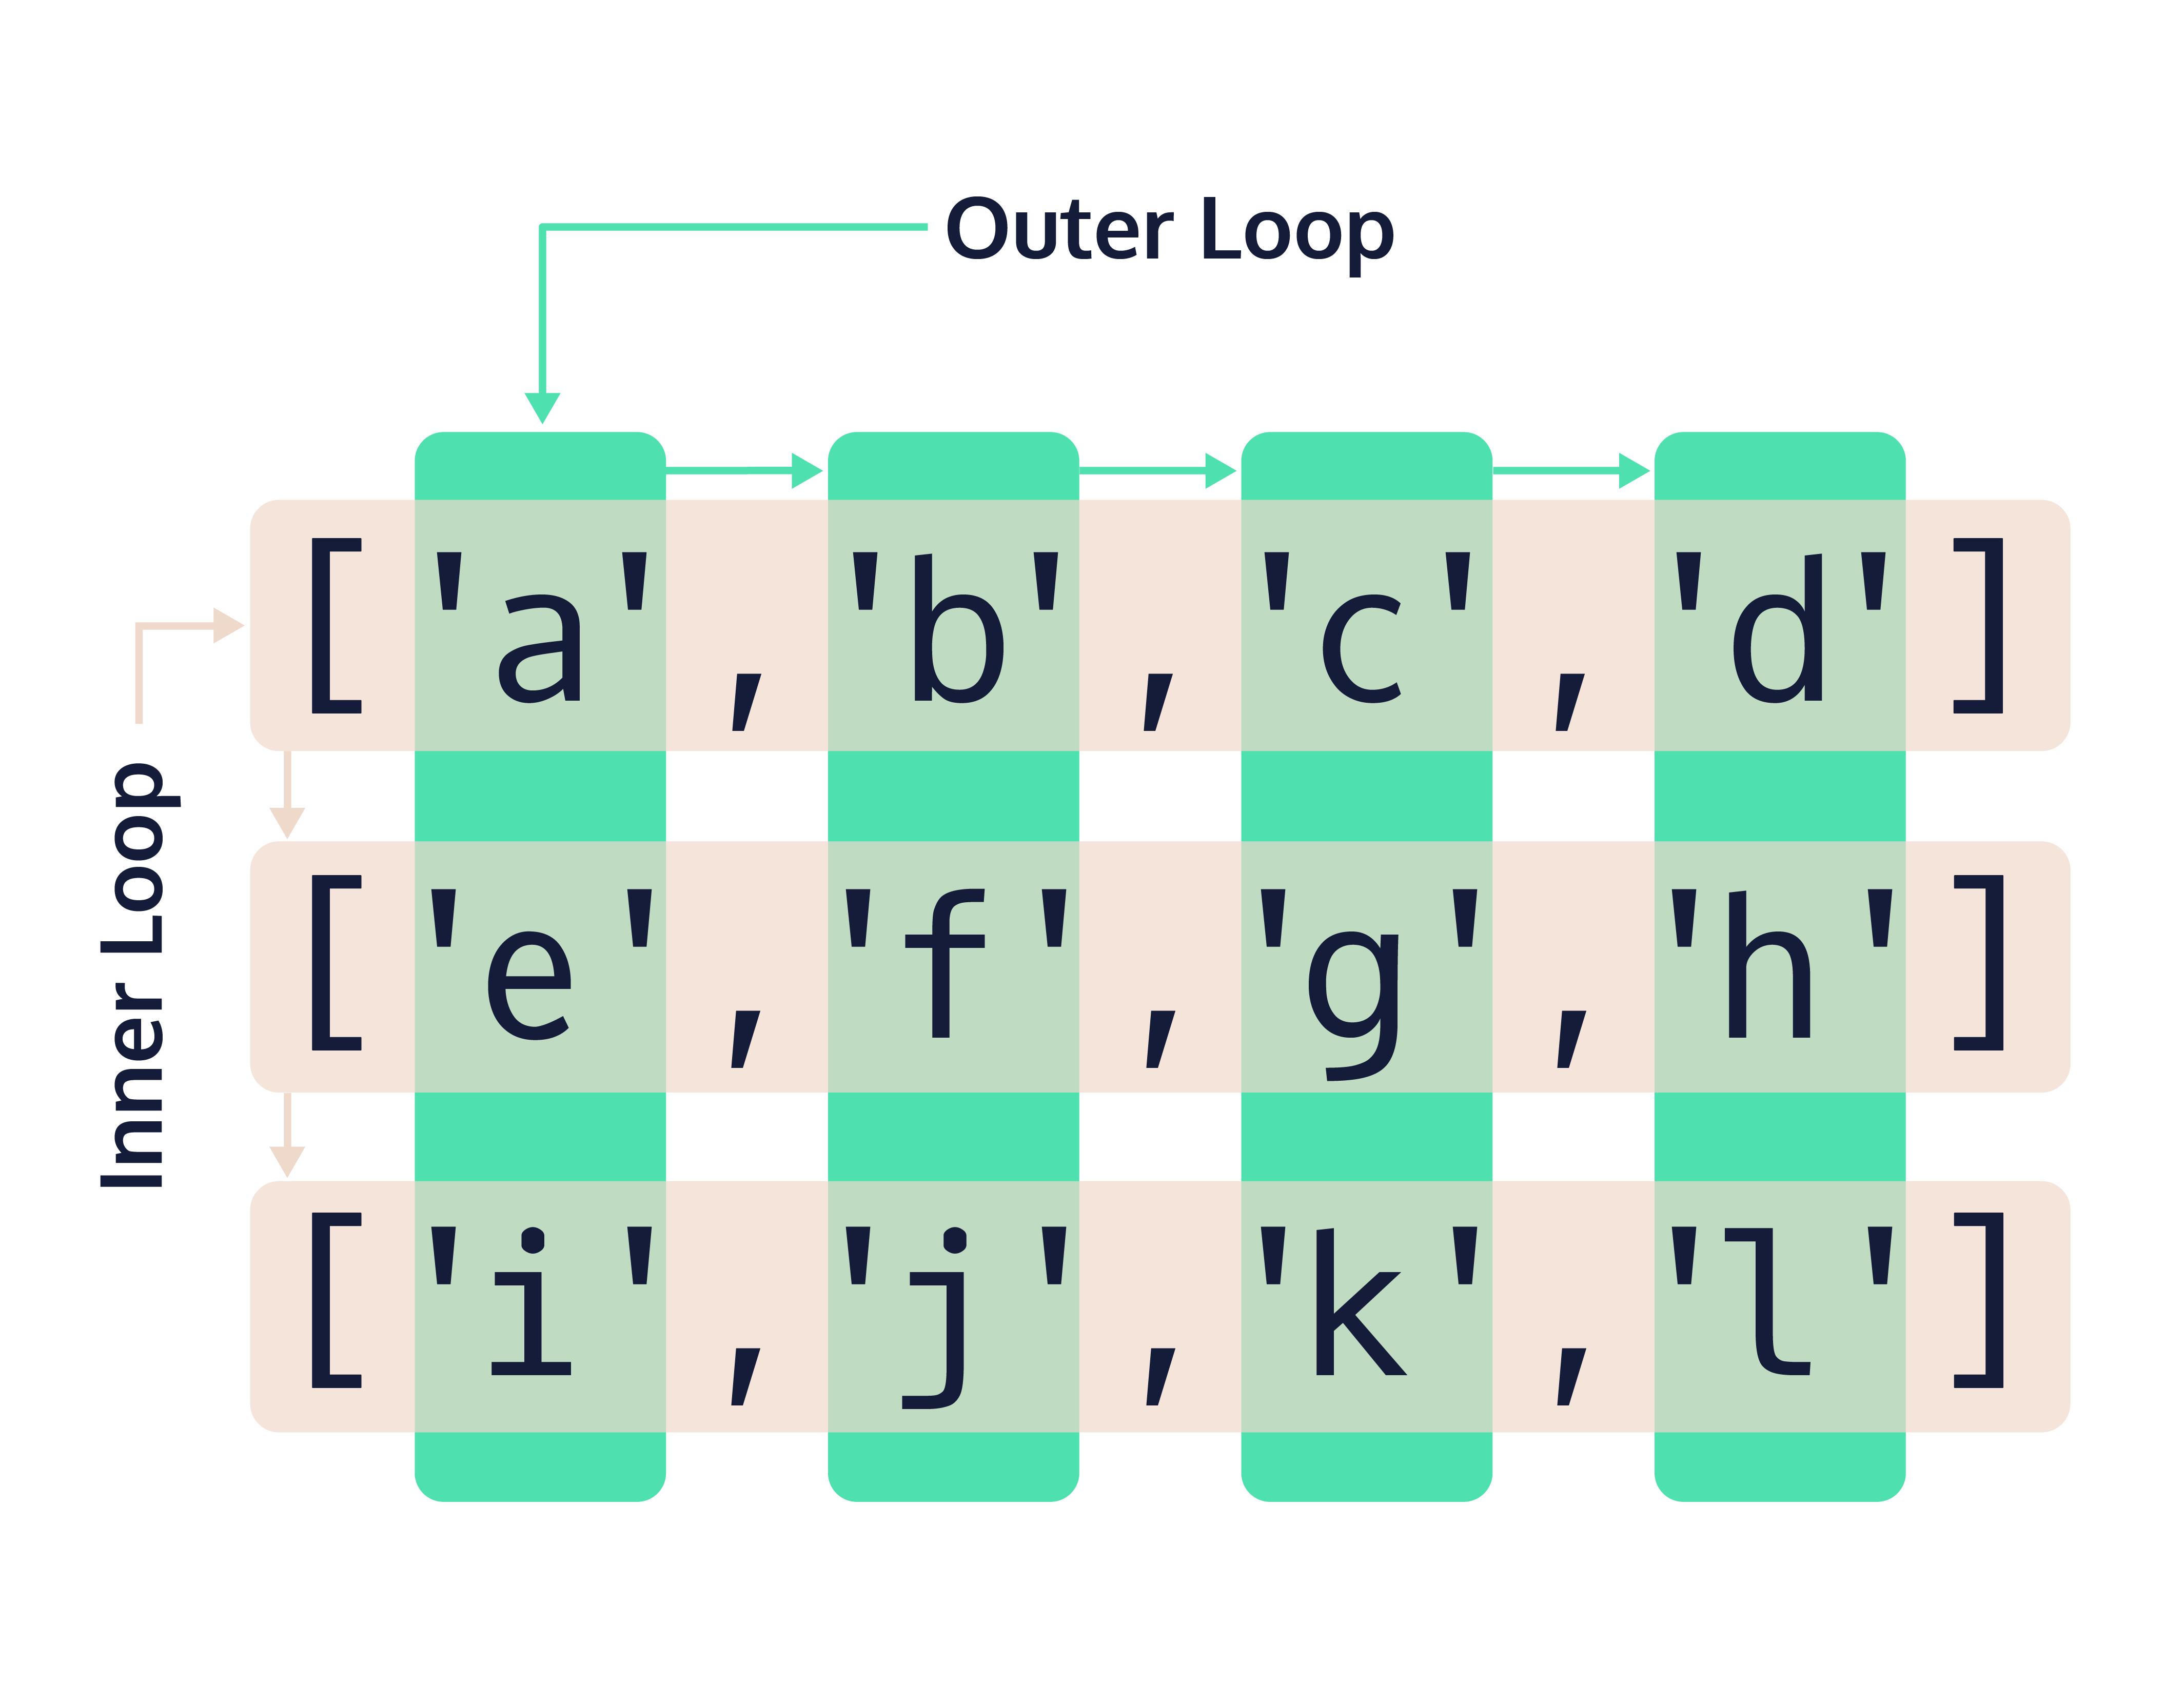 The outer loop controls the column while the inner loop controls the row in that column.